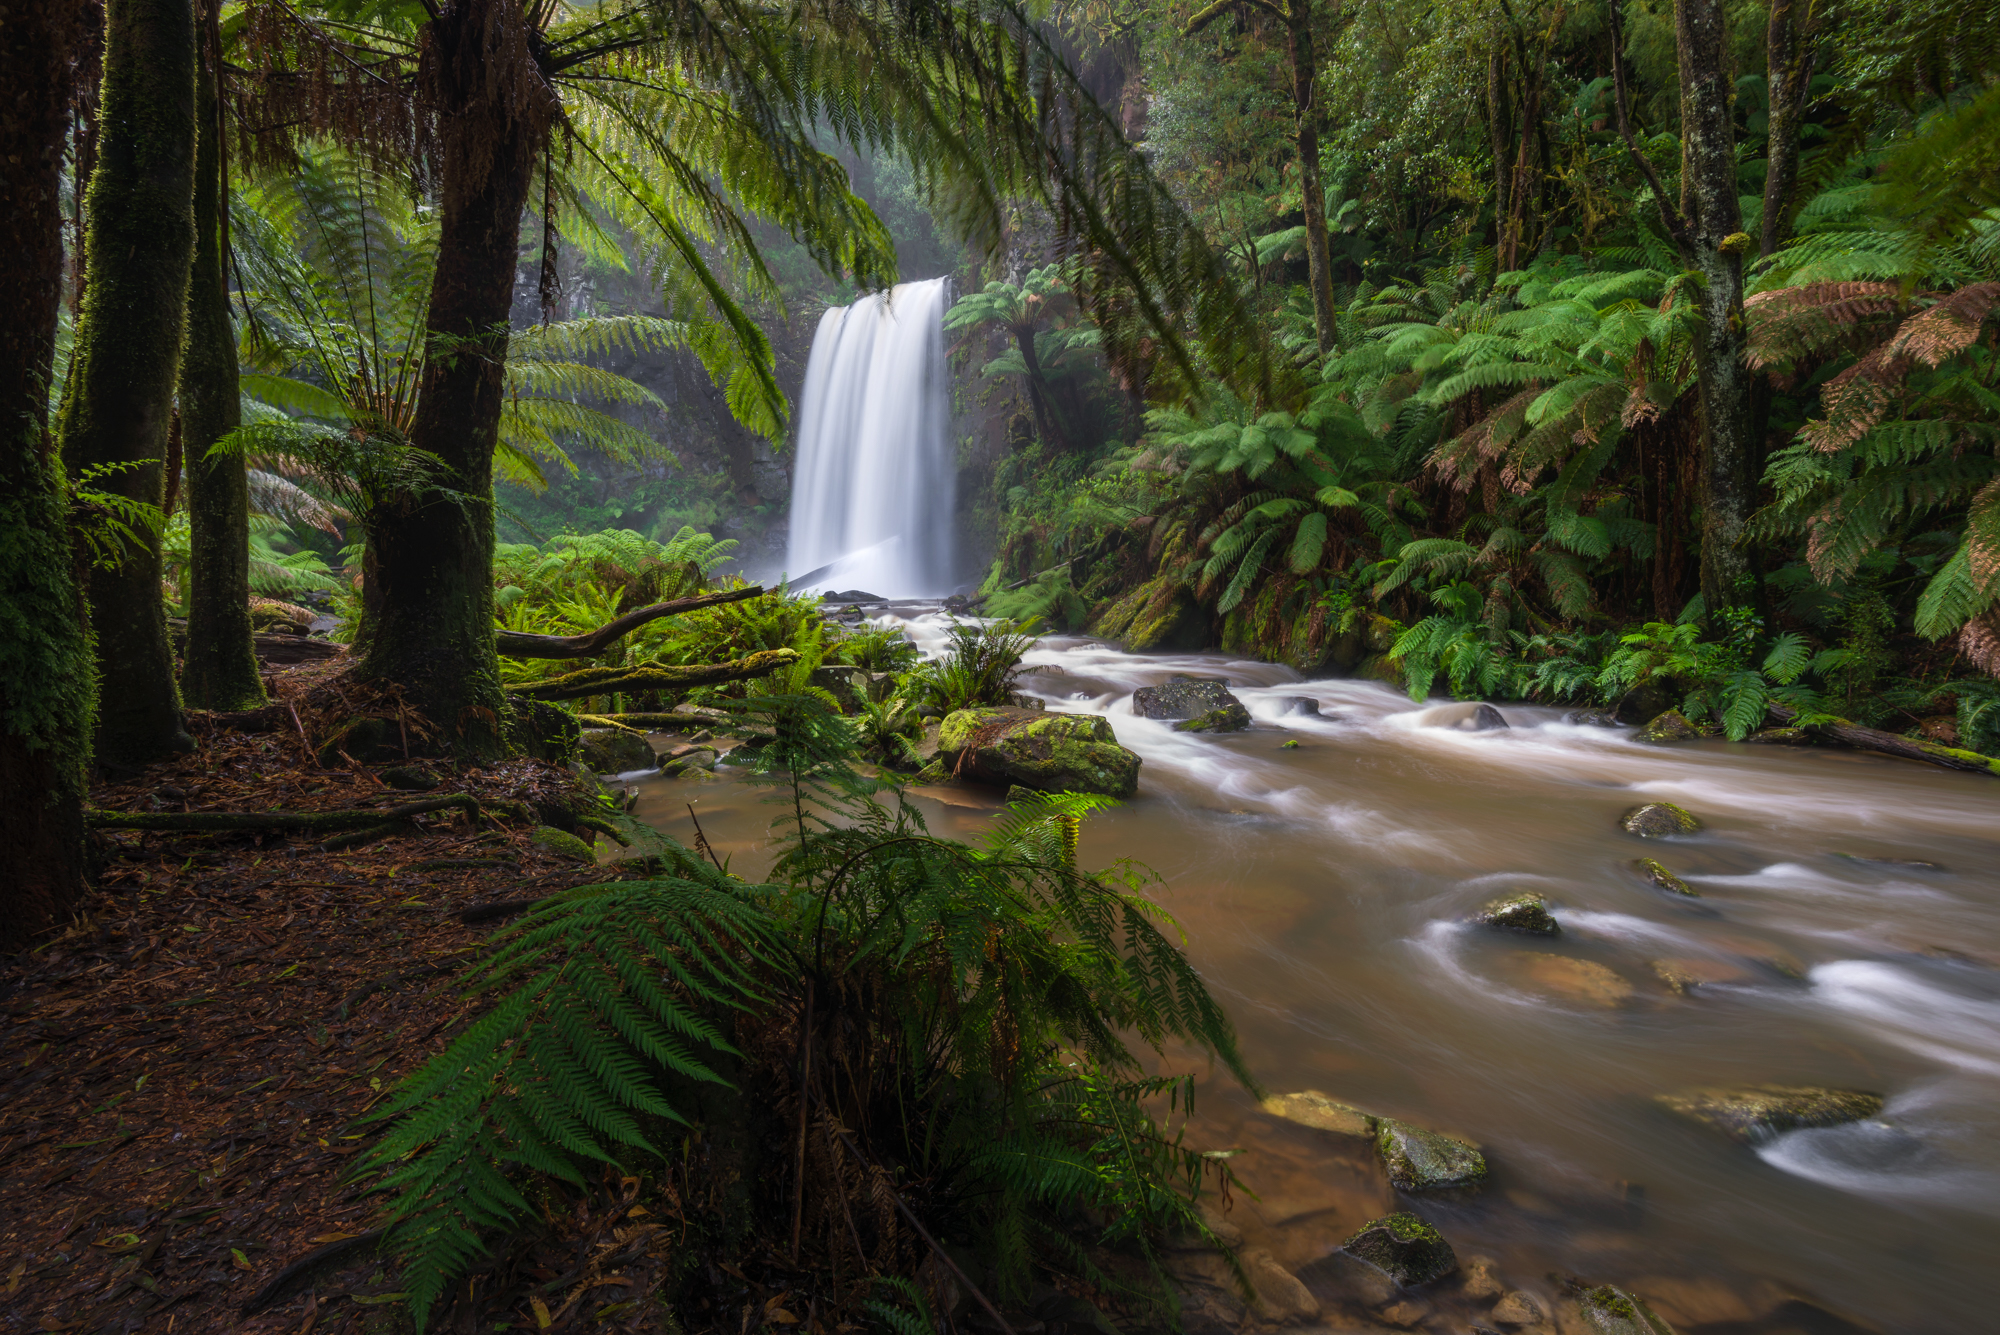 Below Main Lookout: Hopetoun Falls - Nikon D800 @ ISO 100 | f/16 | 16mm | 3 sec